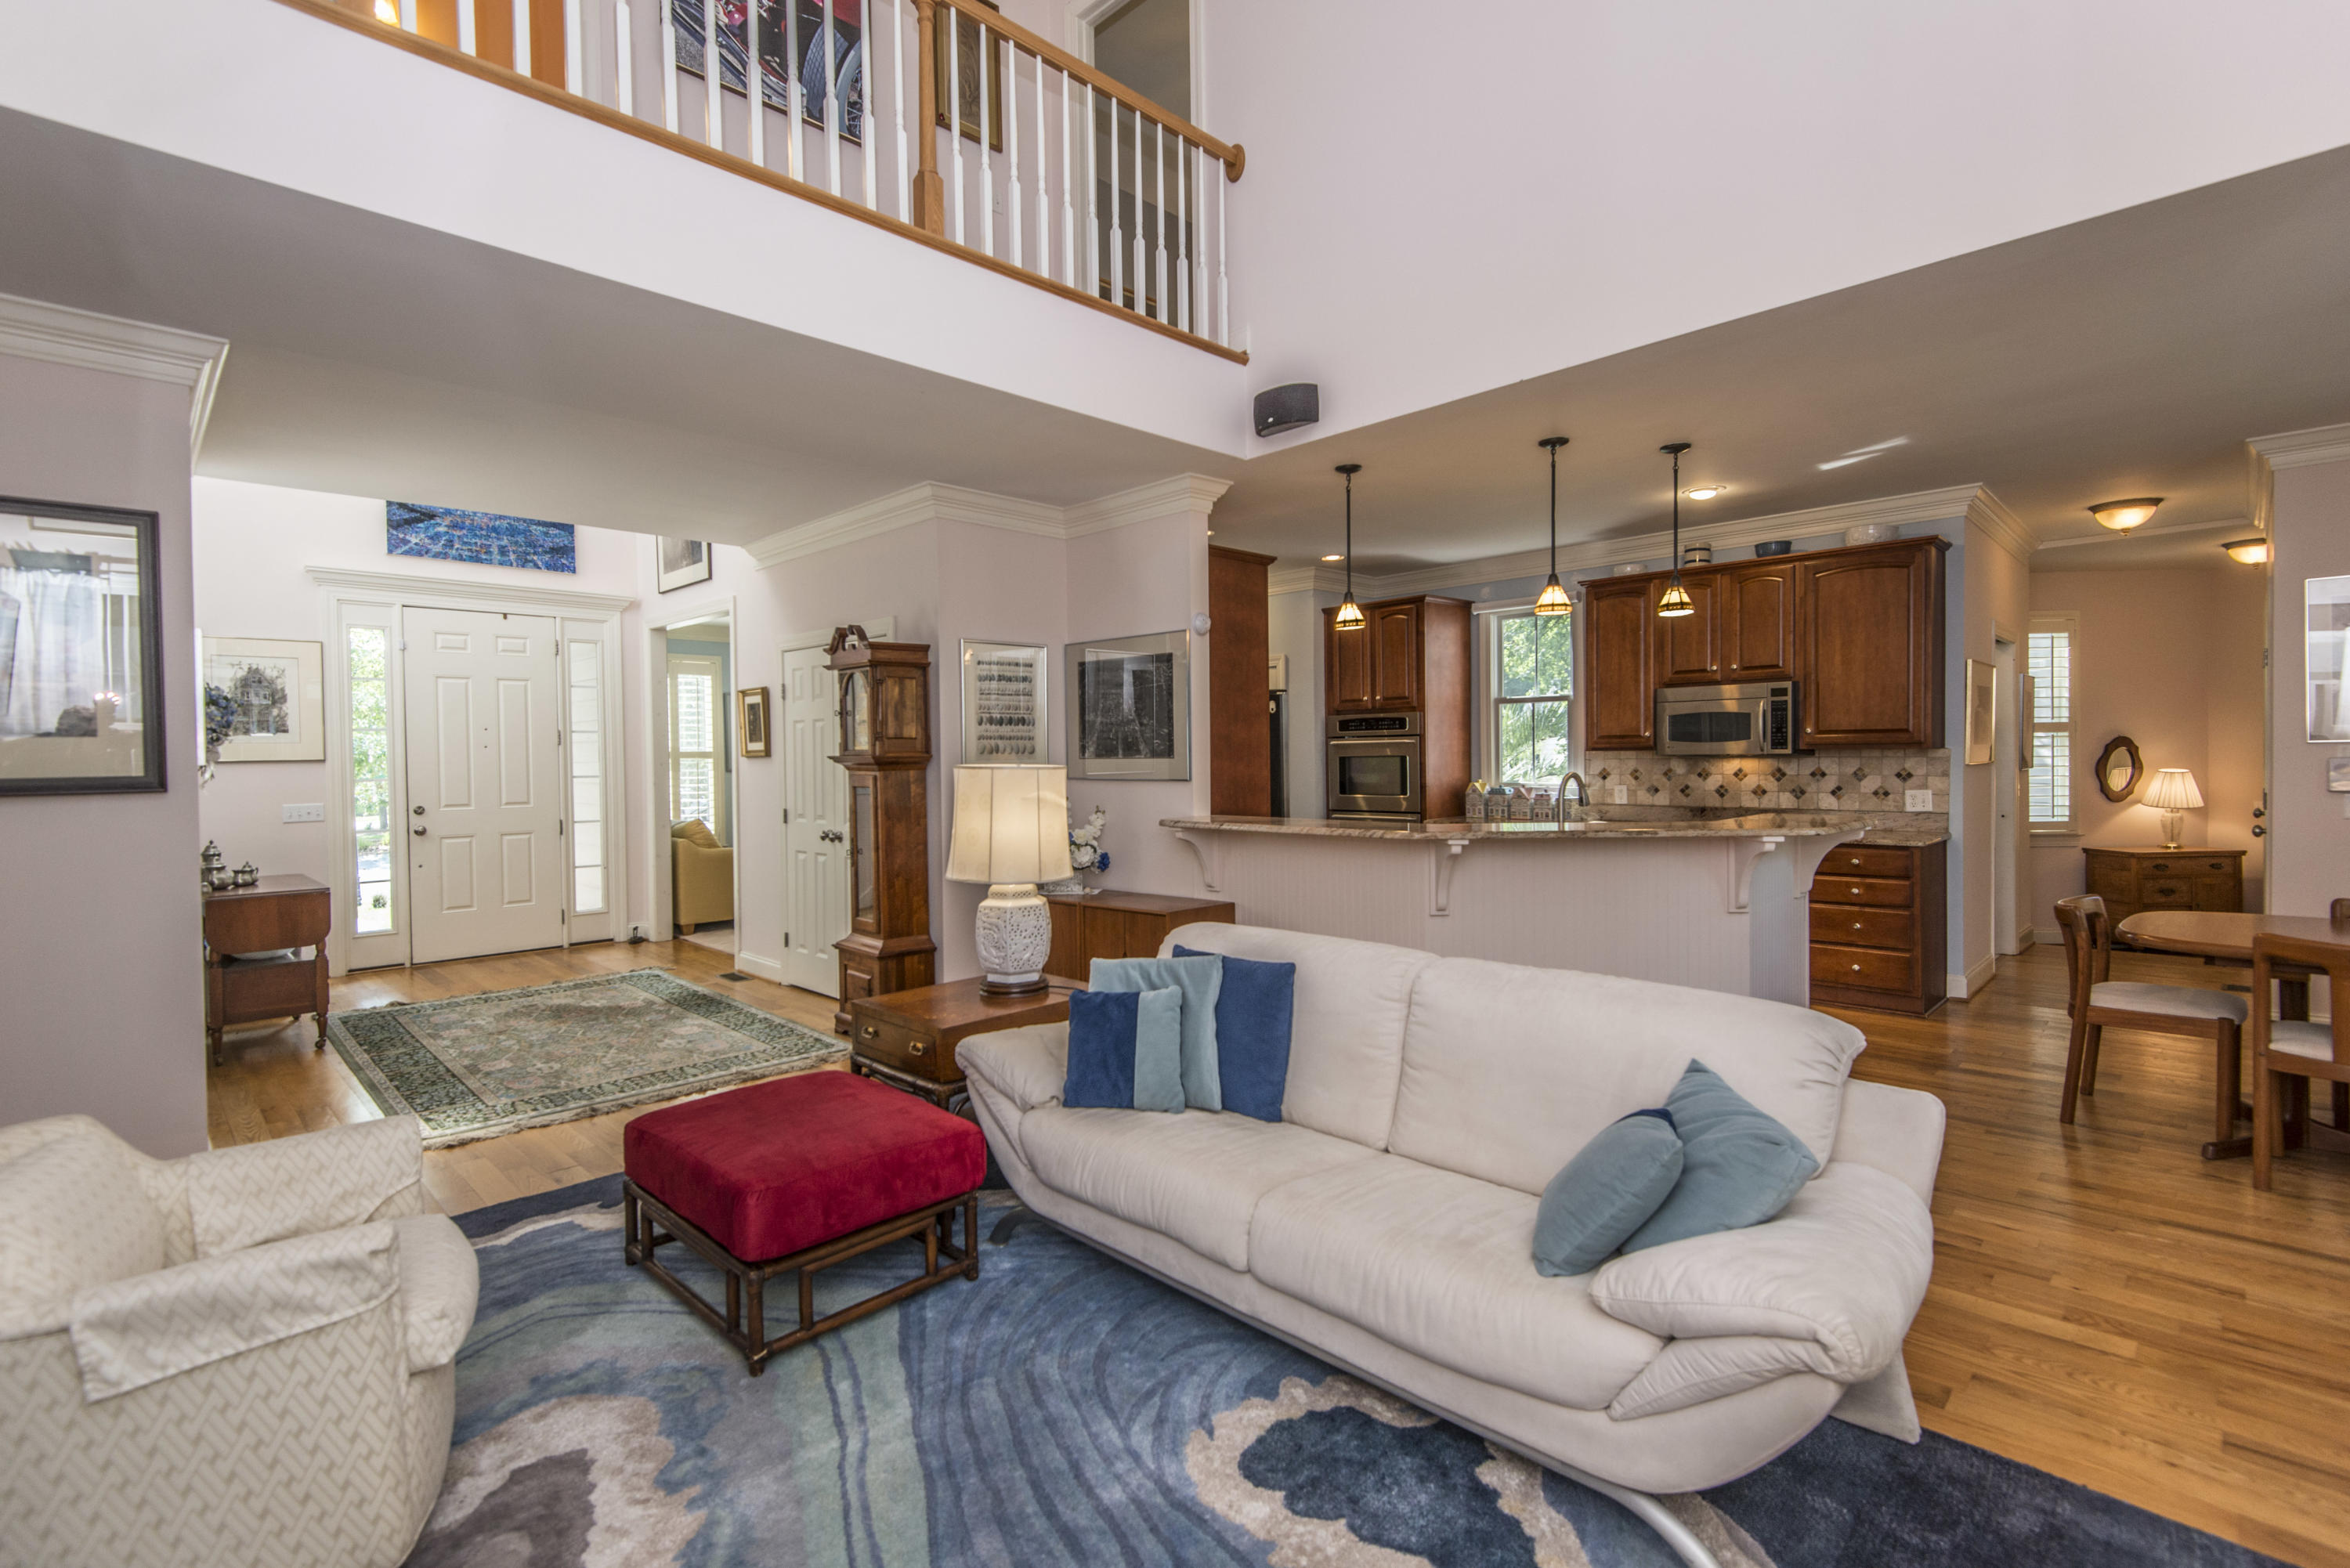 The Villages In St Johns Woods Homes For Sale - 4087 Amy, Johns Island, SC - 17